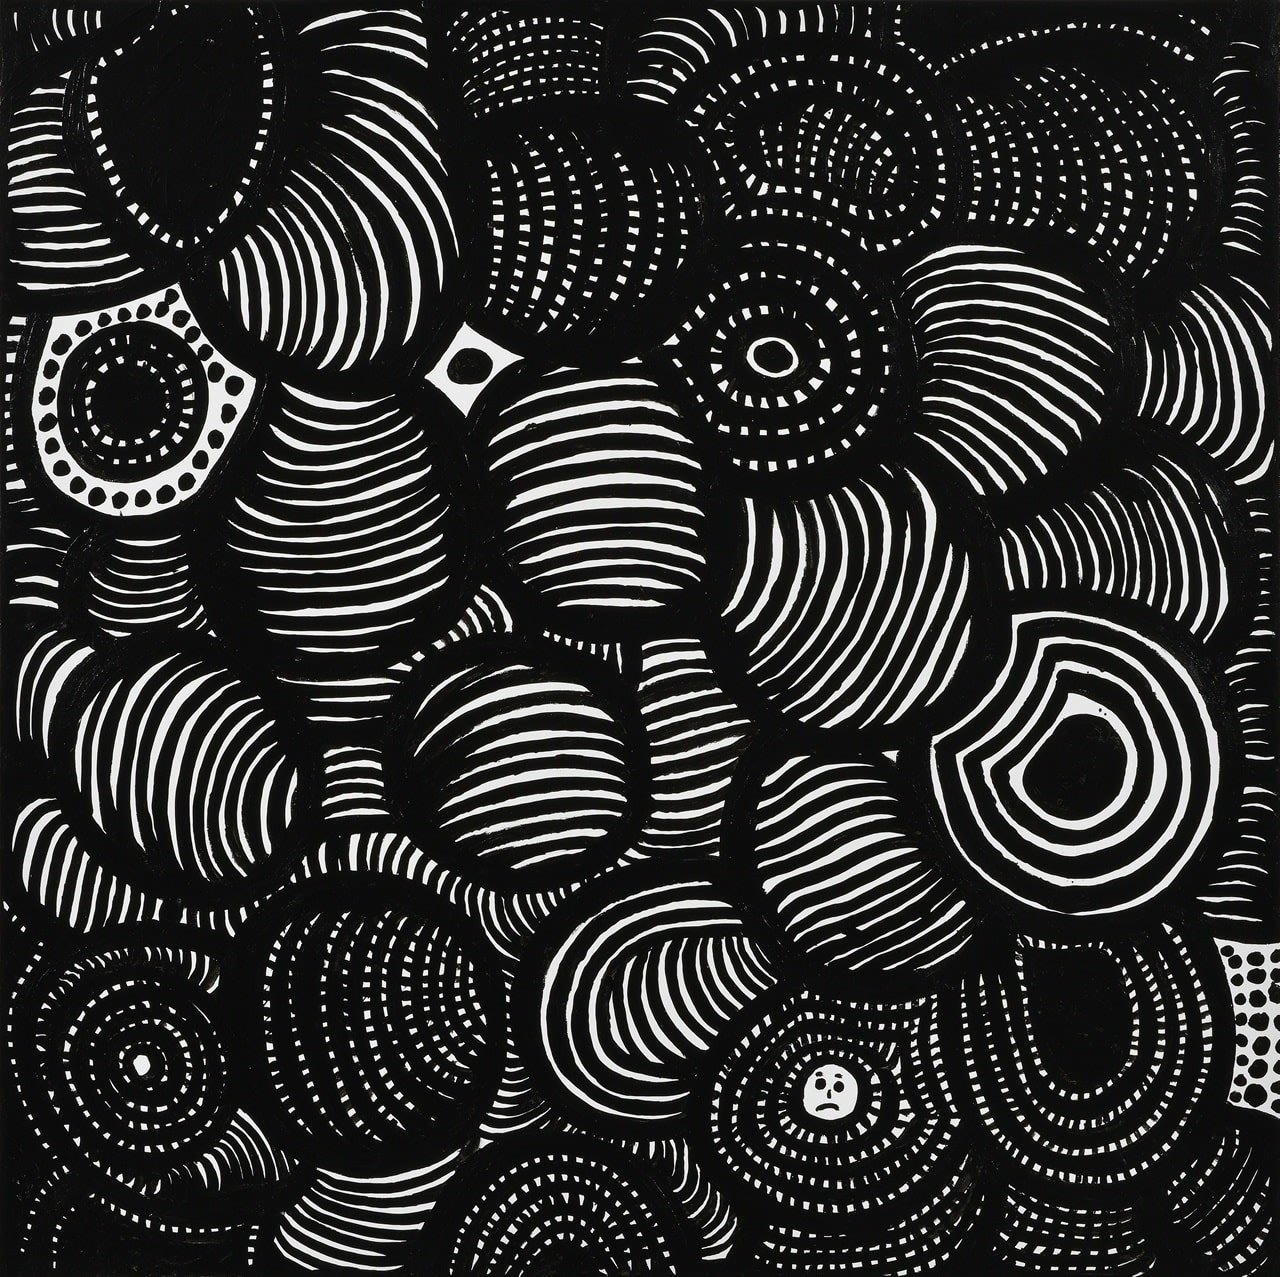 YAYOI KUSAMA I WANT TO TALK ABOUT EVERYTHING IN THE UNIVERSE, 2020 Acrylic on canvas 100 x 100 cm